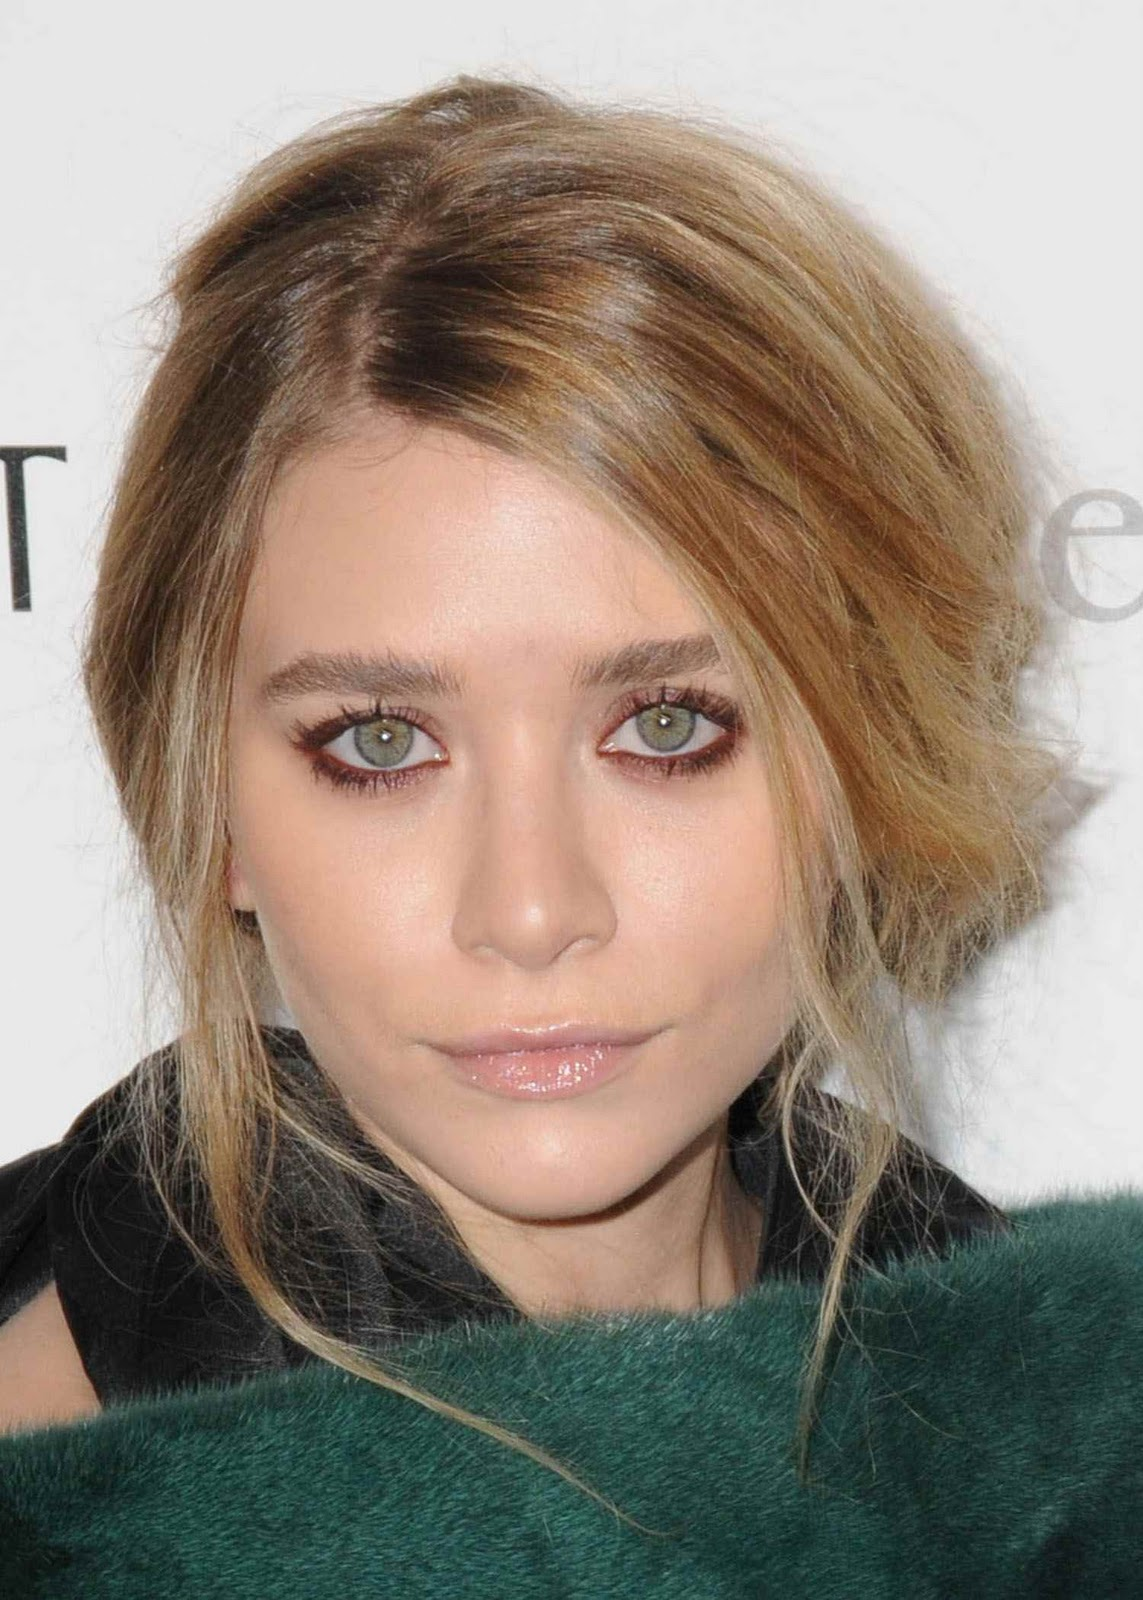 http://3.bp.blogspot.com/-h_5LckYNAsg/TZXO1EcRFRI/AAAAAAAAALQ/IVO7T1tJ52U/s1600/ashley+olsen+make+up+red+pink+dark.jpg